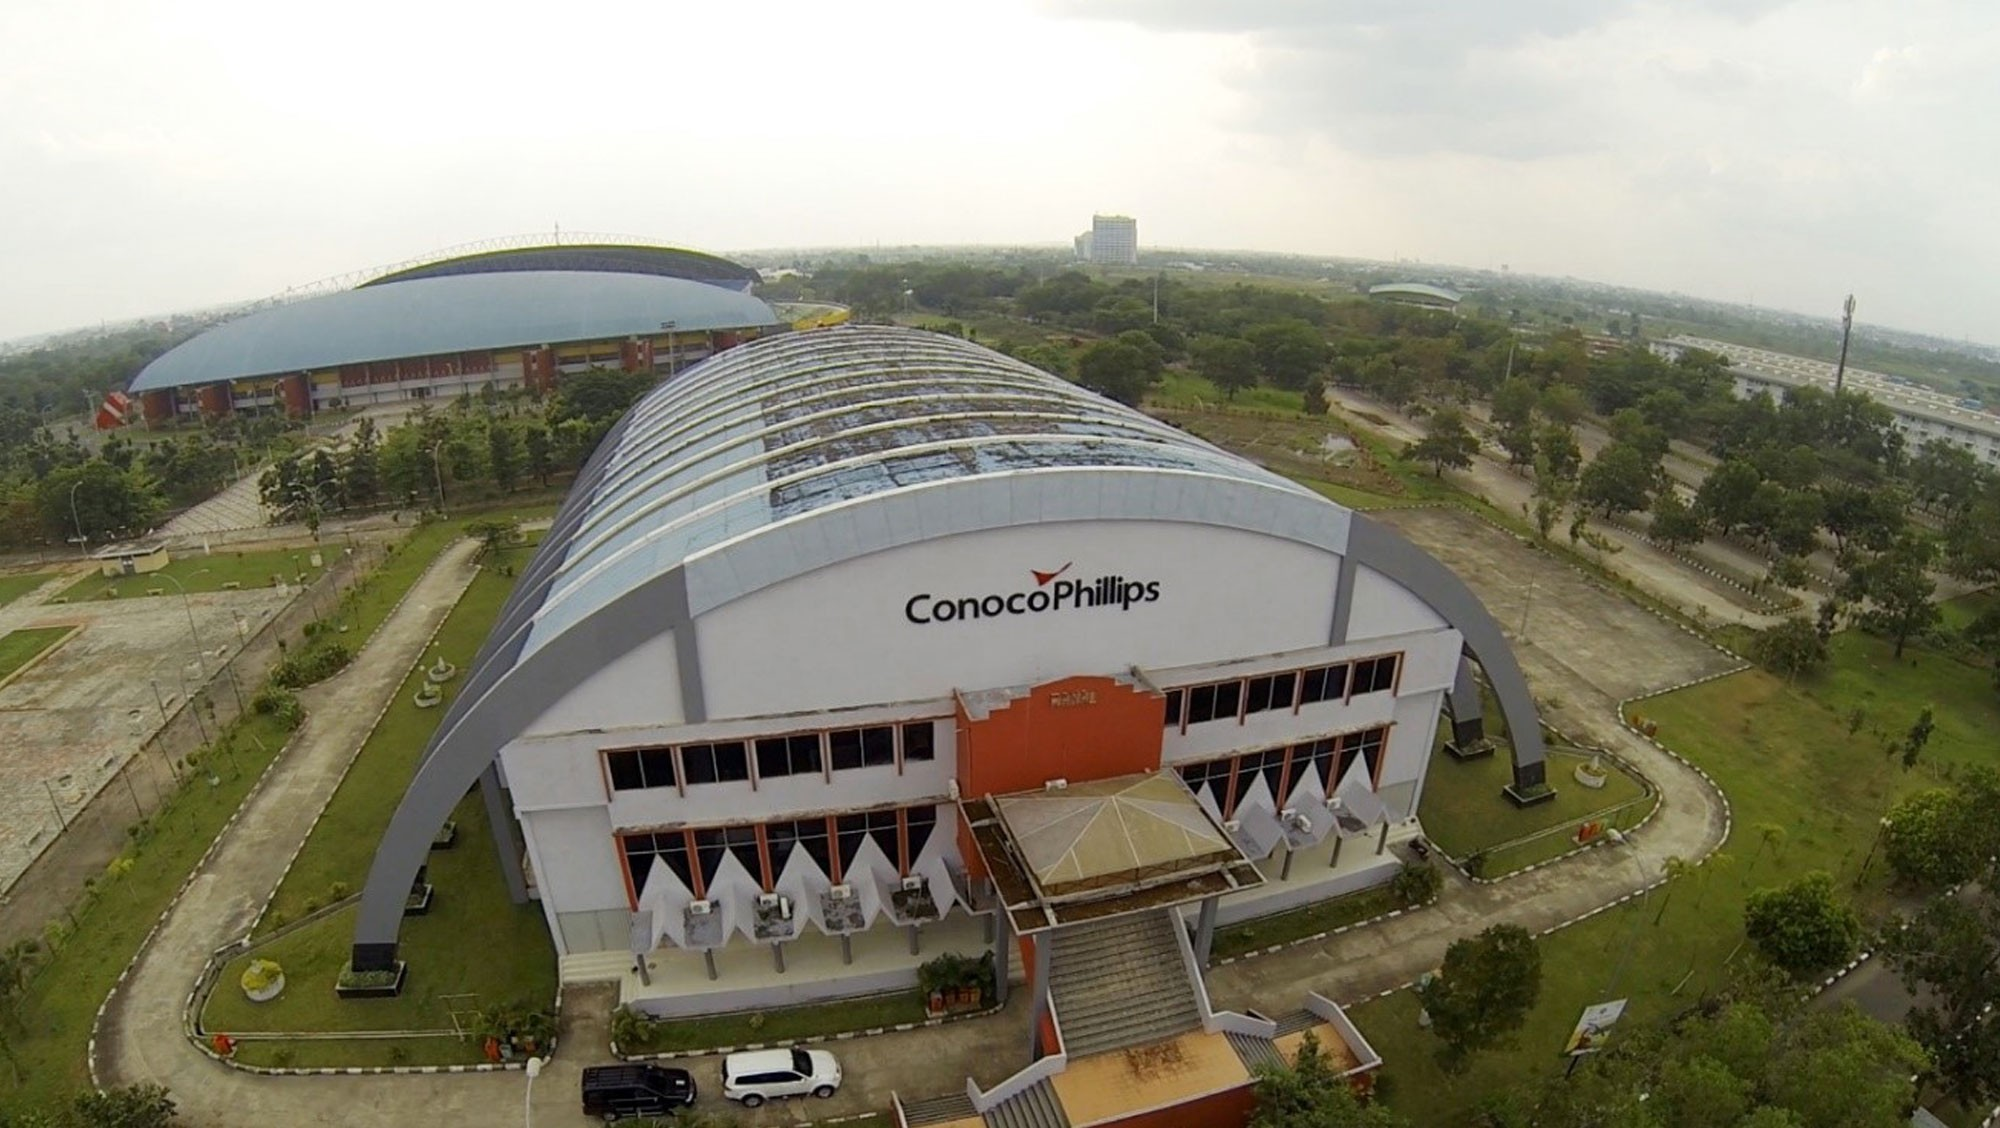 Aerial view of sports hall with curved roof and ConocoPhillips logo above entrance